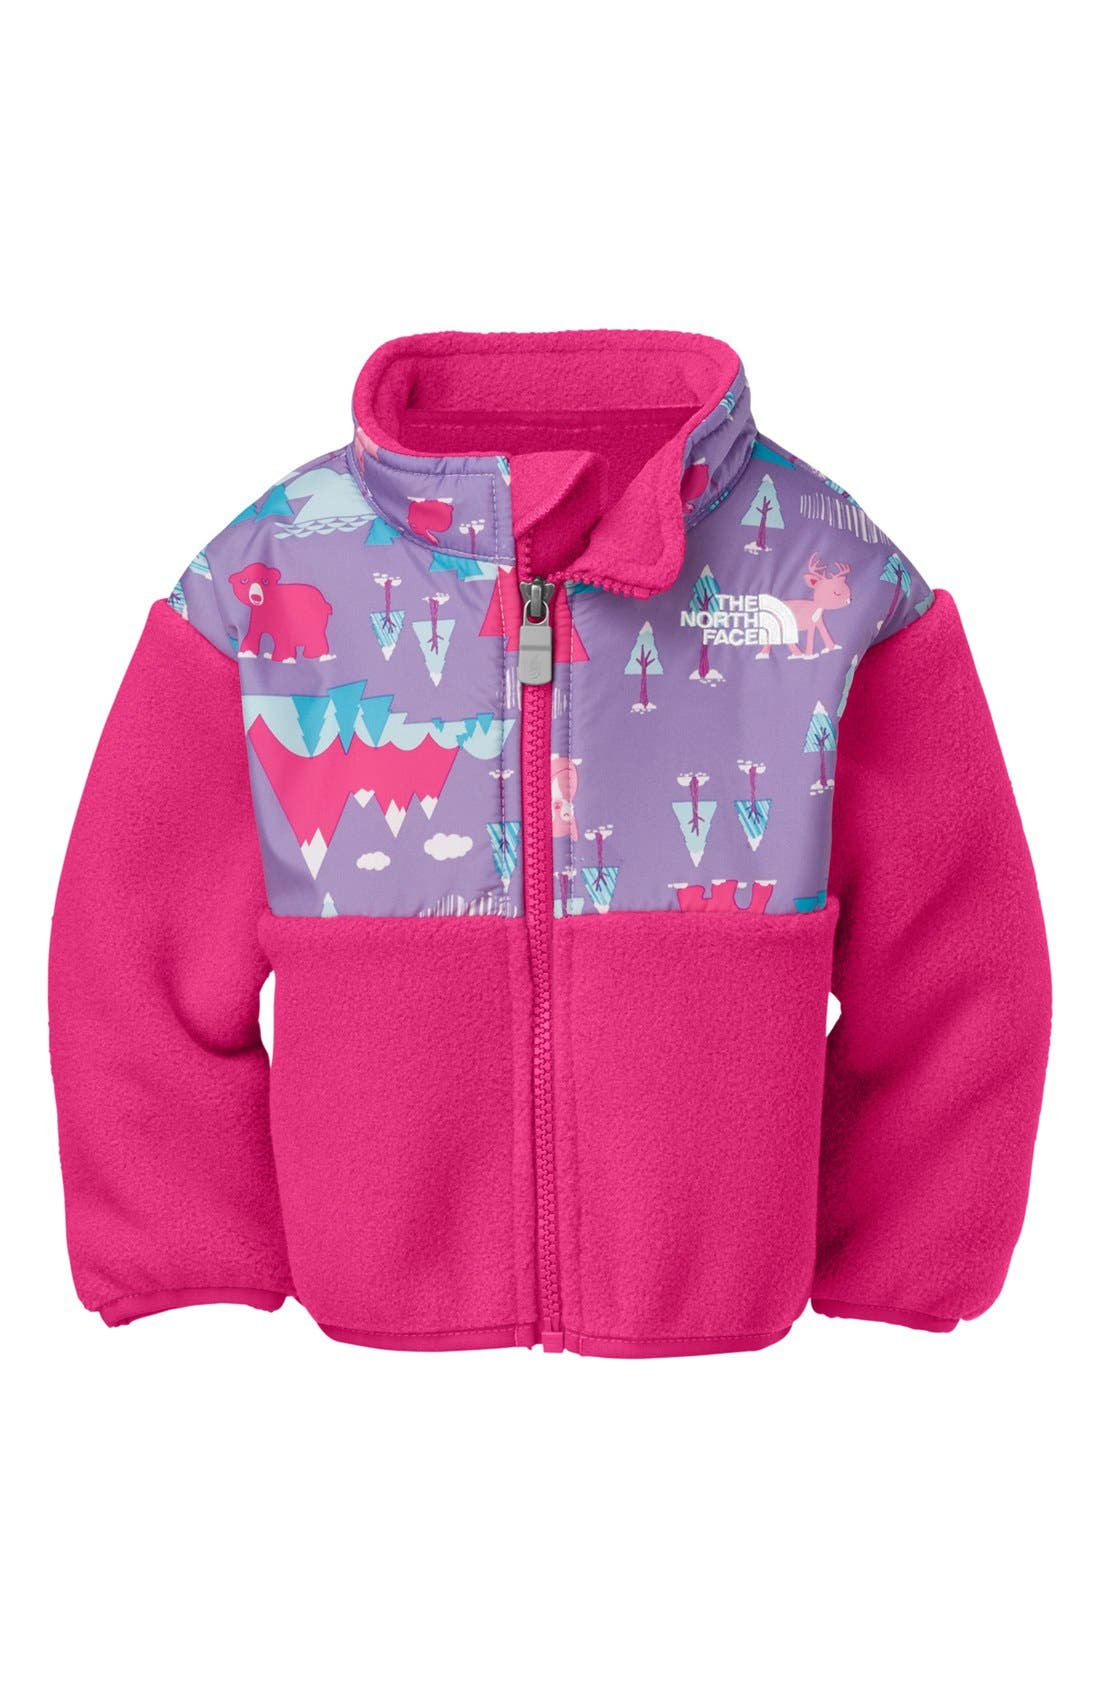 Alternate Image 1 Selected - The North Face 'Denali' Jacket (Baby Girls)